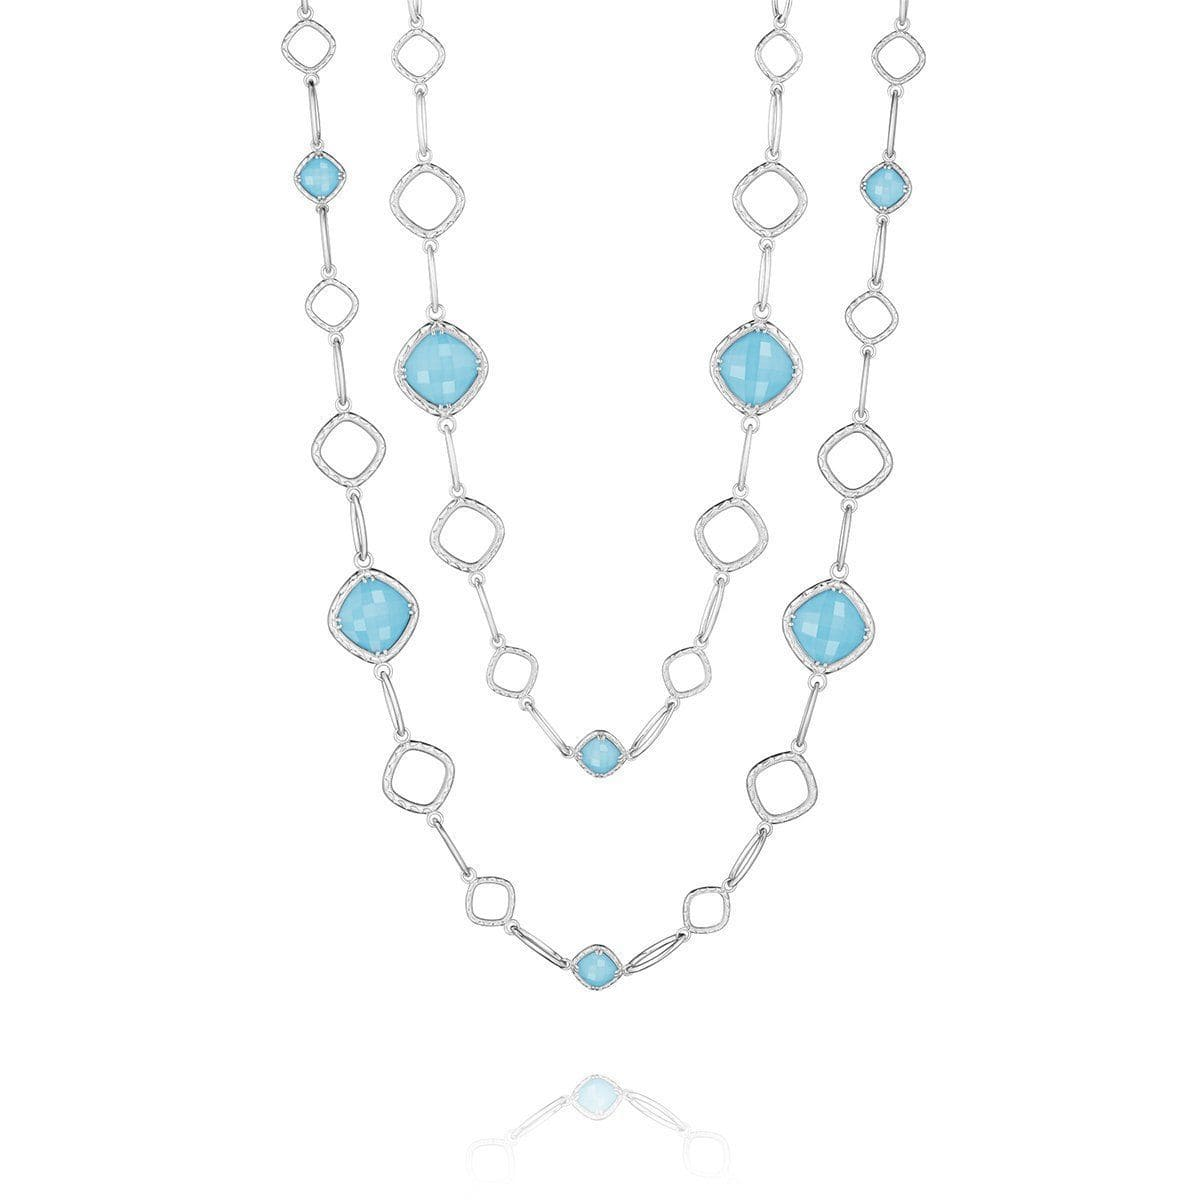 Clear Quartz Neolite Turquoise Necklace - SN11405